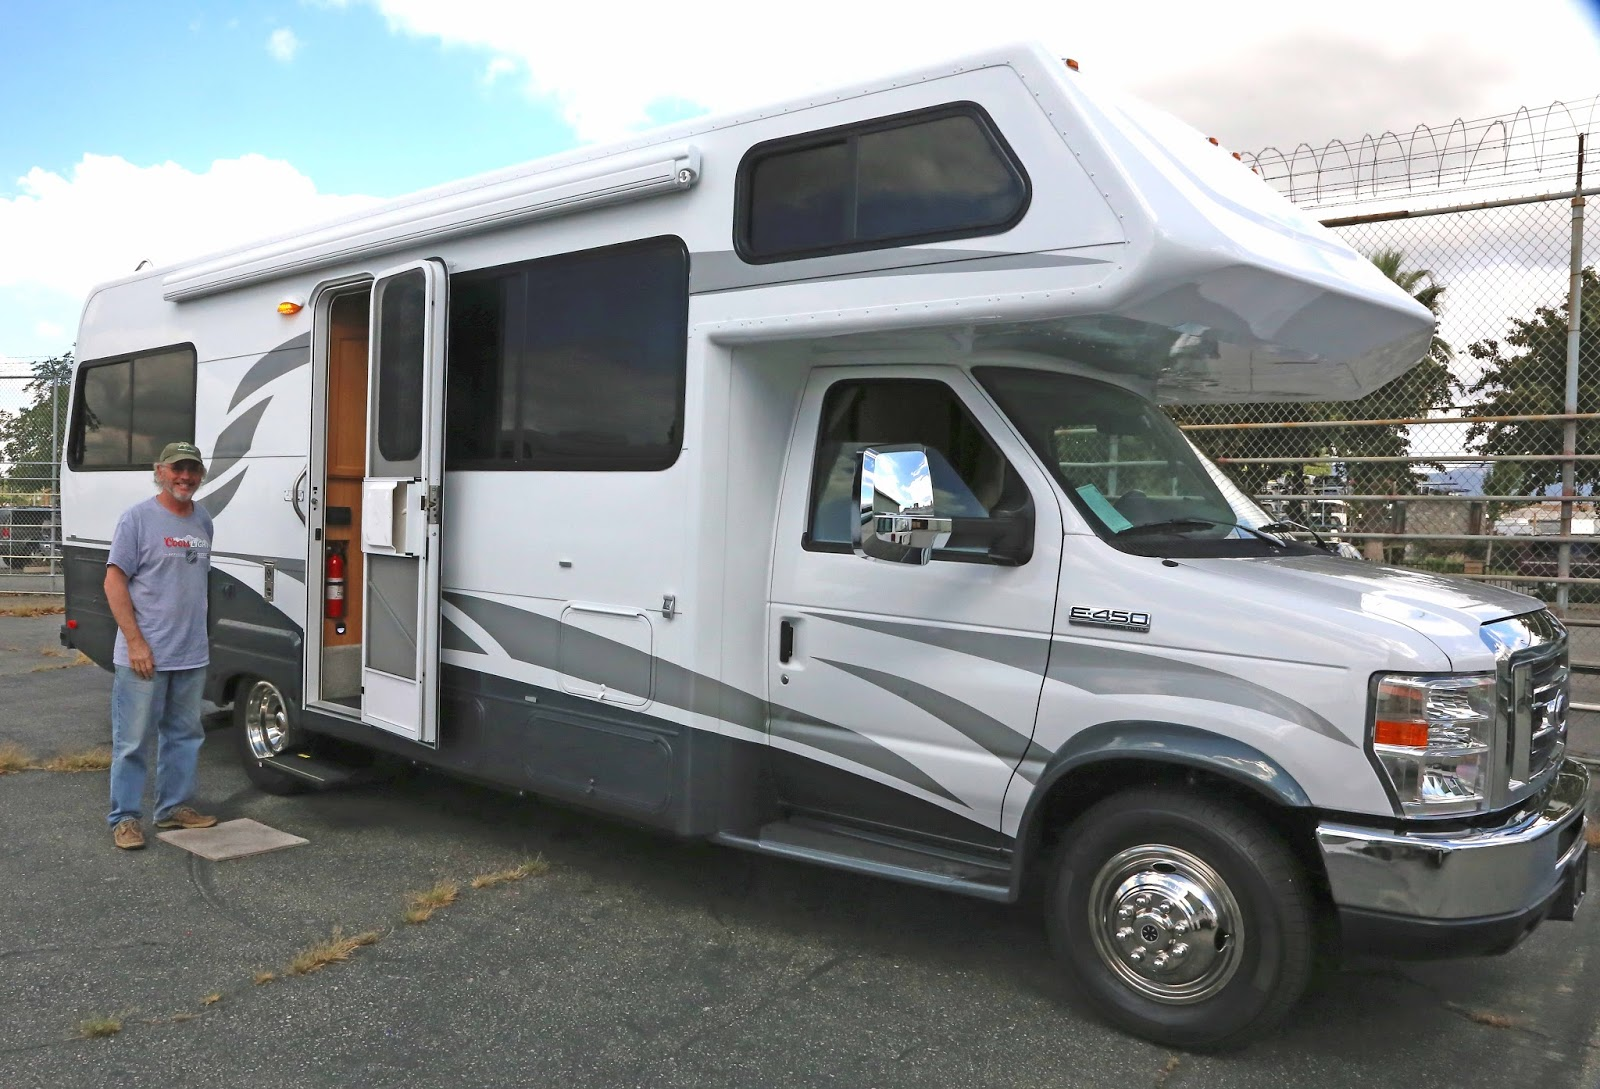 Tom and Kristen's Great RV Adventure: New Motorhome and